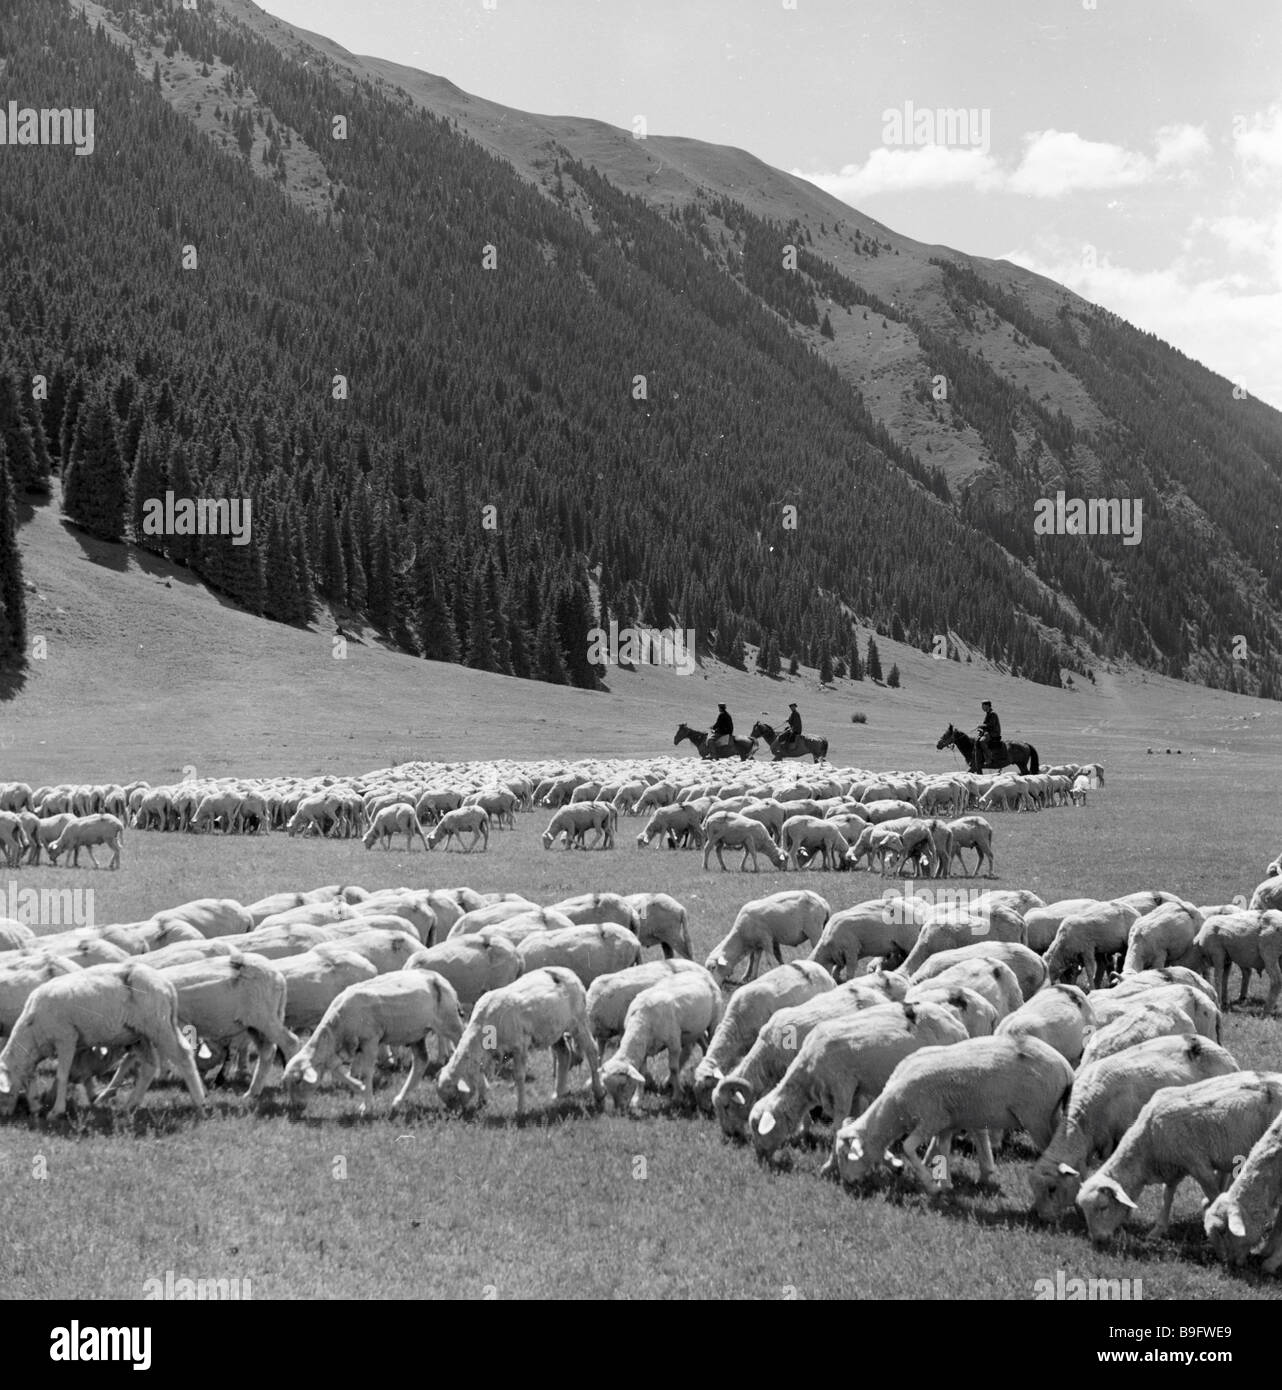 Sheep herds on the pasture at an altitude of 2 600 m - Stock Image